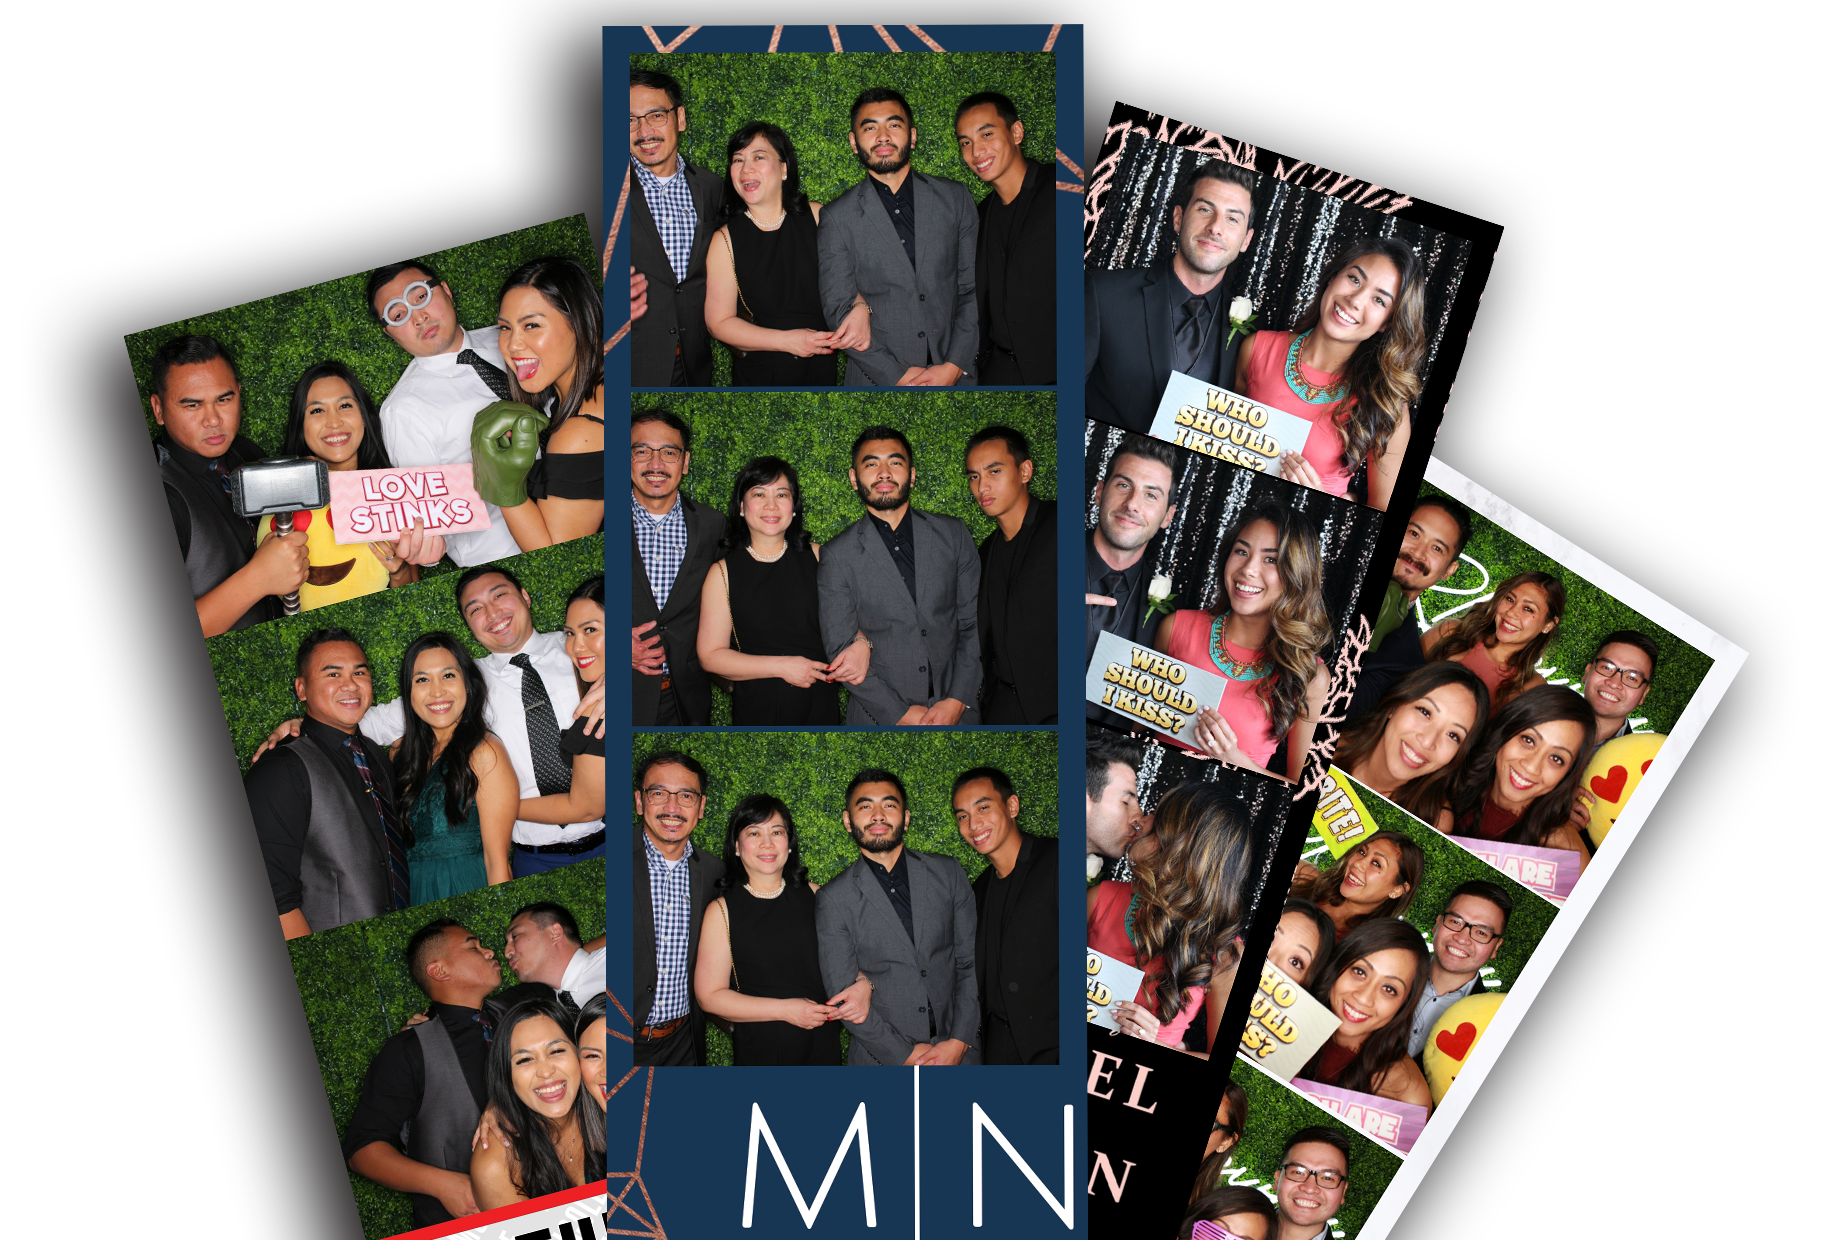 Print your photo! - Enjoy and take home your prints. Ready Instantly!